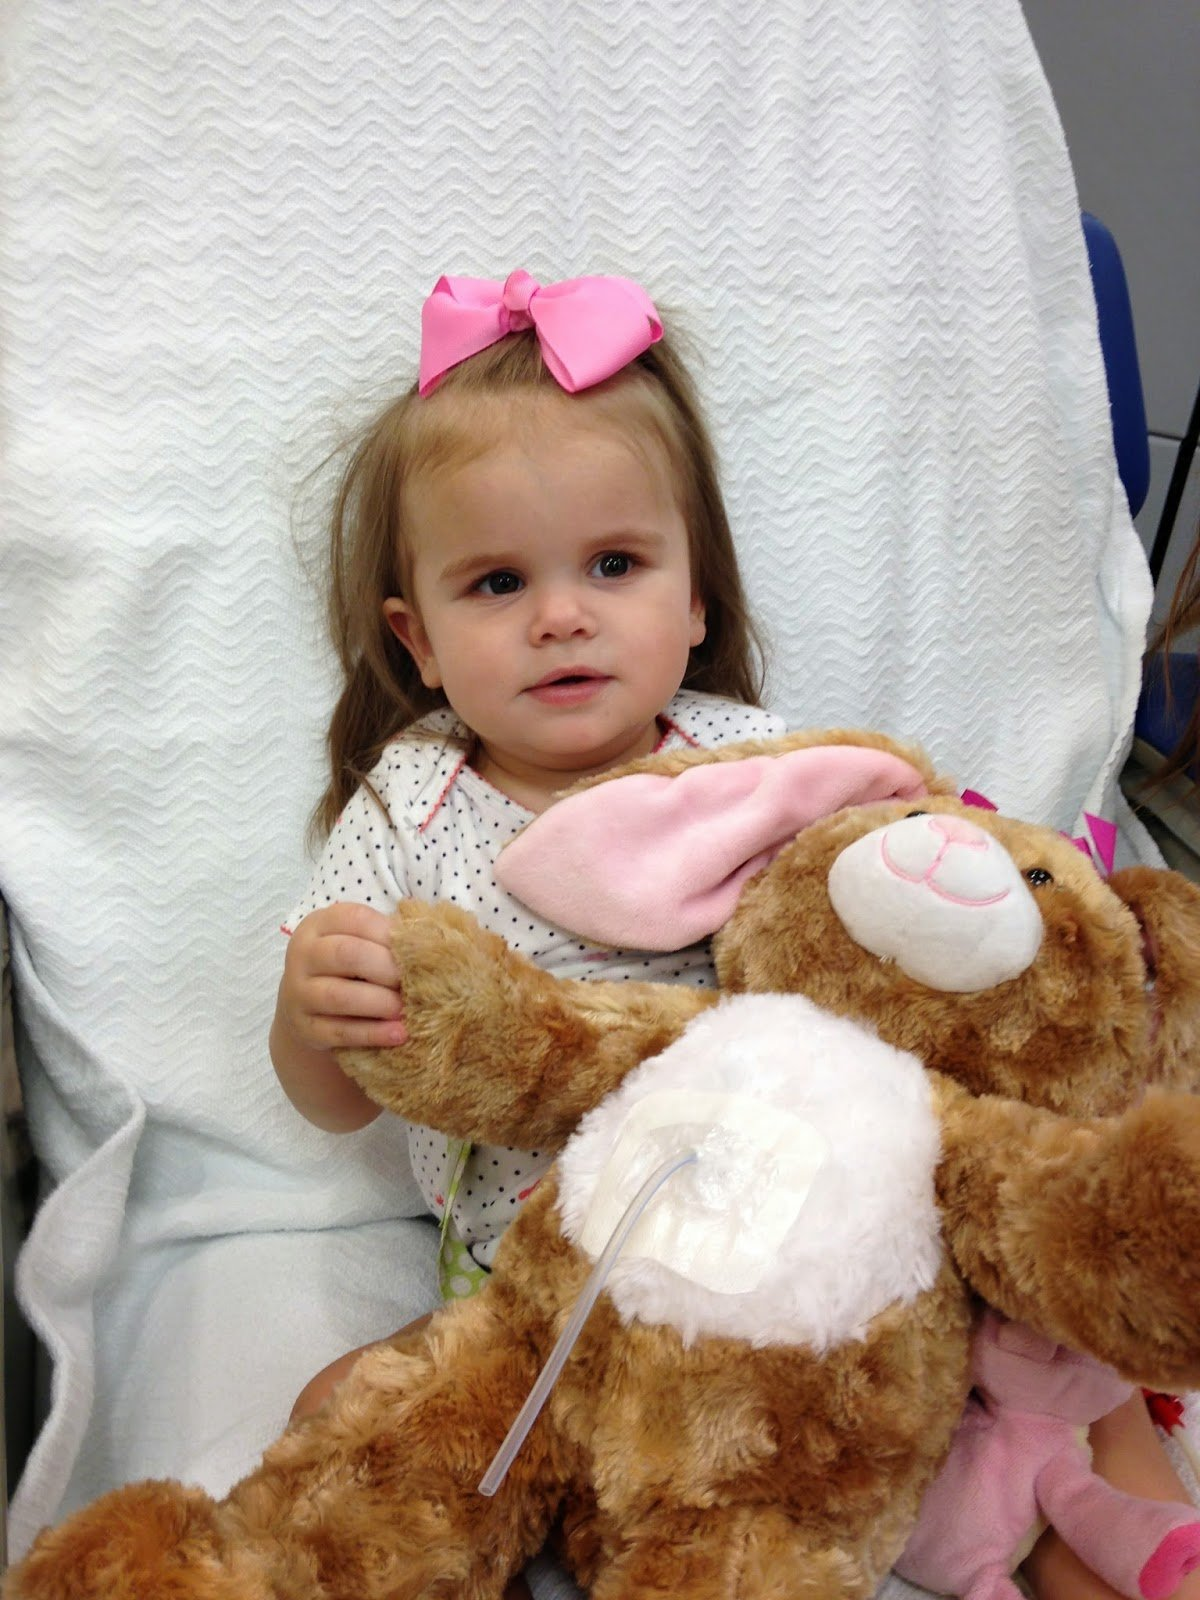 Merit Medical Donates PD Catheters for Stuffed Animals to Comfort Young  Patients 4fd1667ac28b